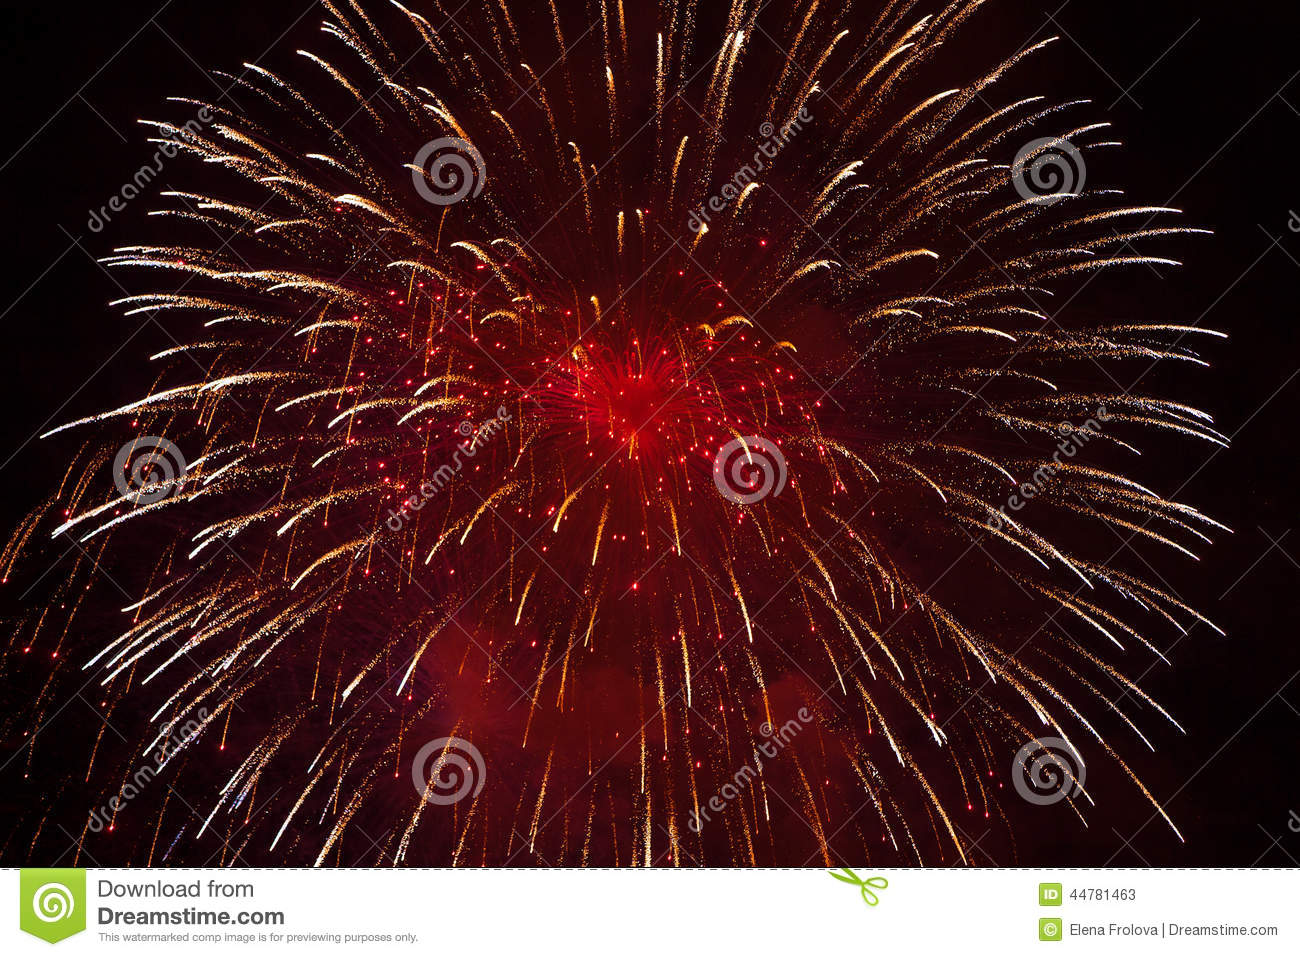 Red Fireworks Free Stock Photo: Red Fireworks Stock Image. Image Of July, Night, Christmas